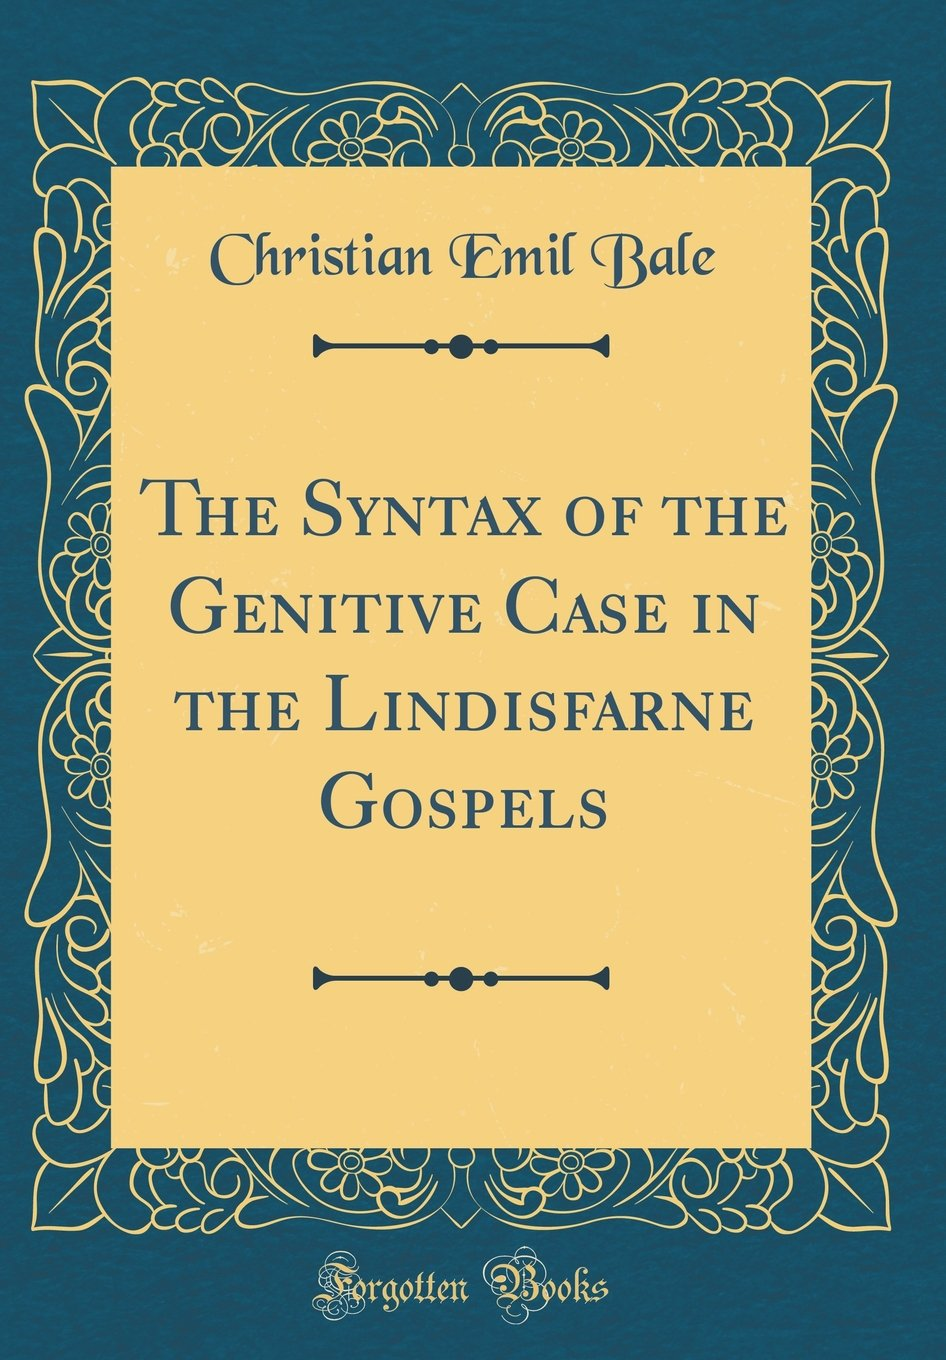 The Syntax of the Genitive Case in the Lindisfarne Gospels (Classic  Reprint): Christian Emil Bale: 9780265890424: Amazon.com: Books